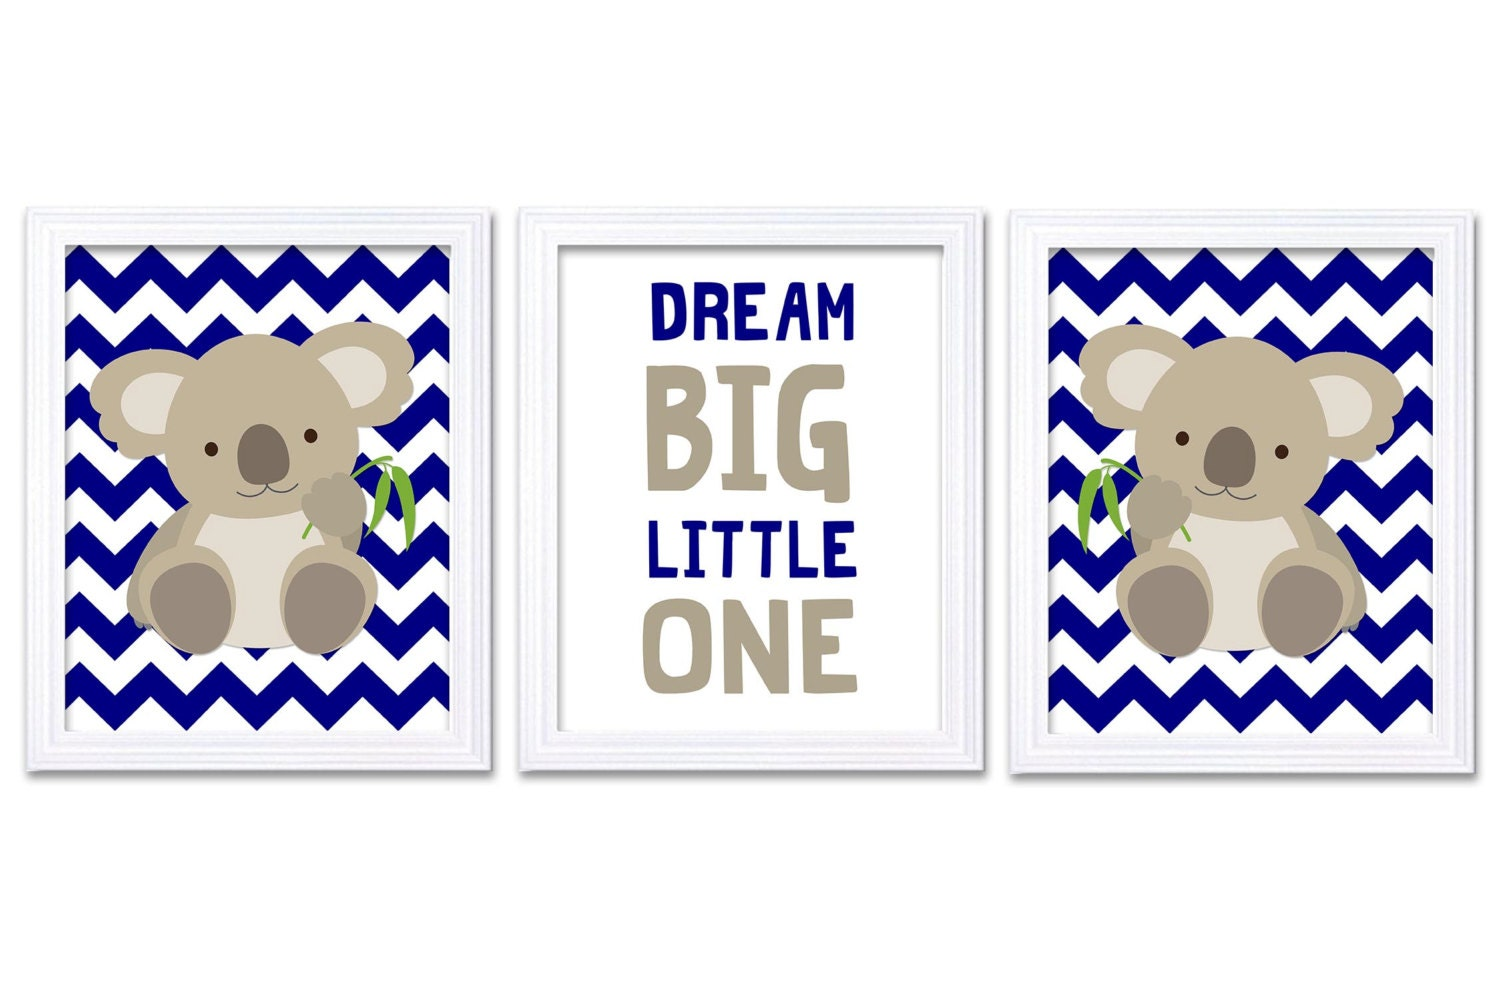 Koala Nursery Art Set of 3 Print Navy Blue Grey Gray Dream Big Little One Child Kid Room Wall Decor